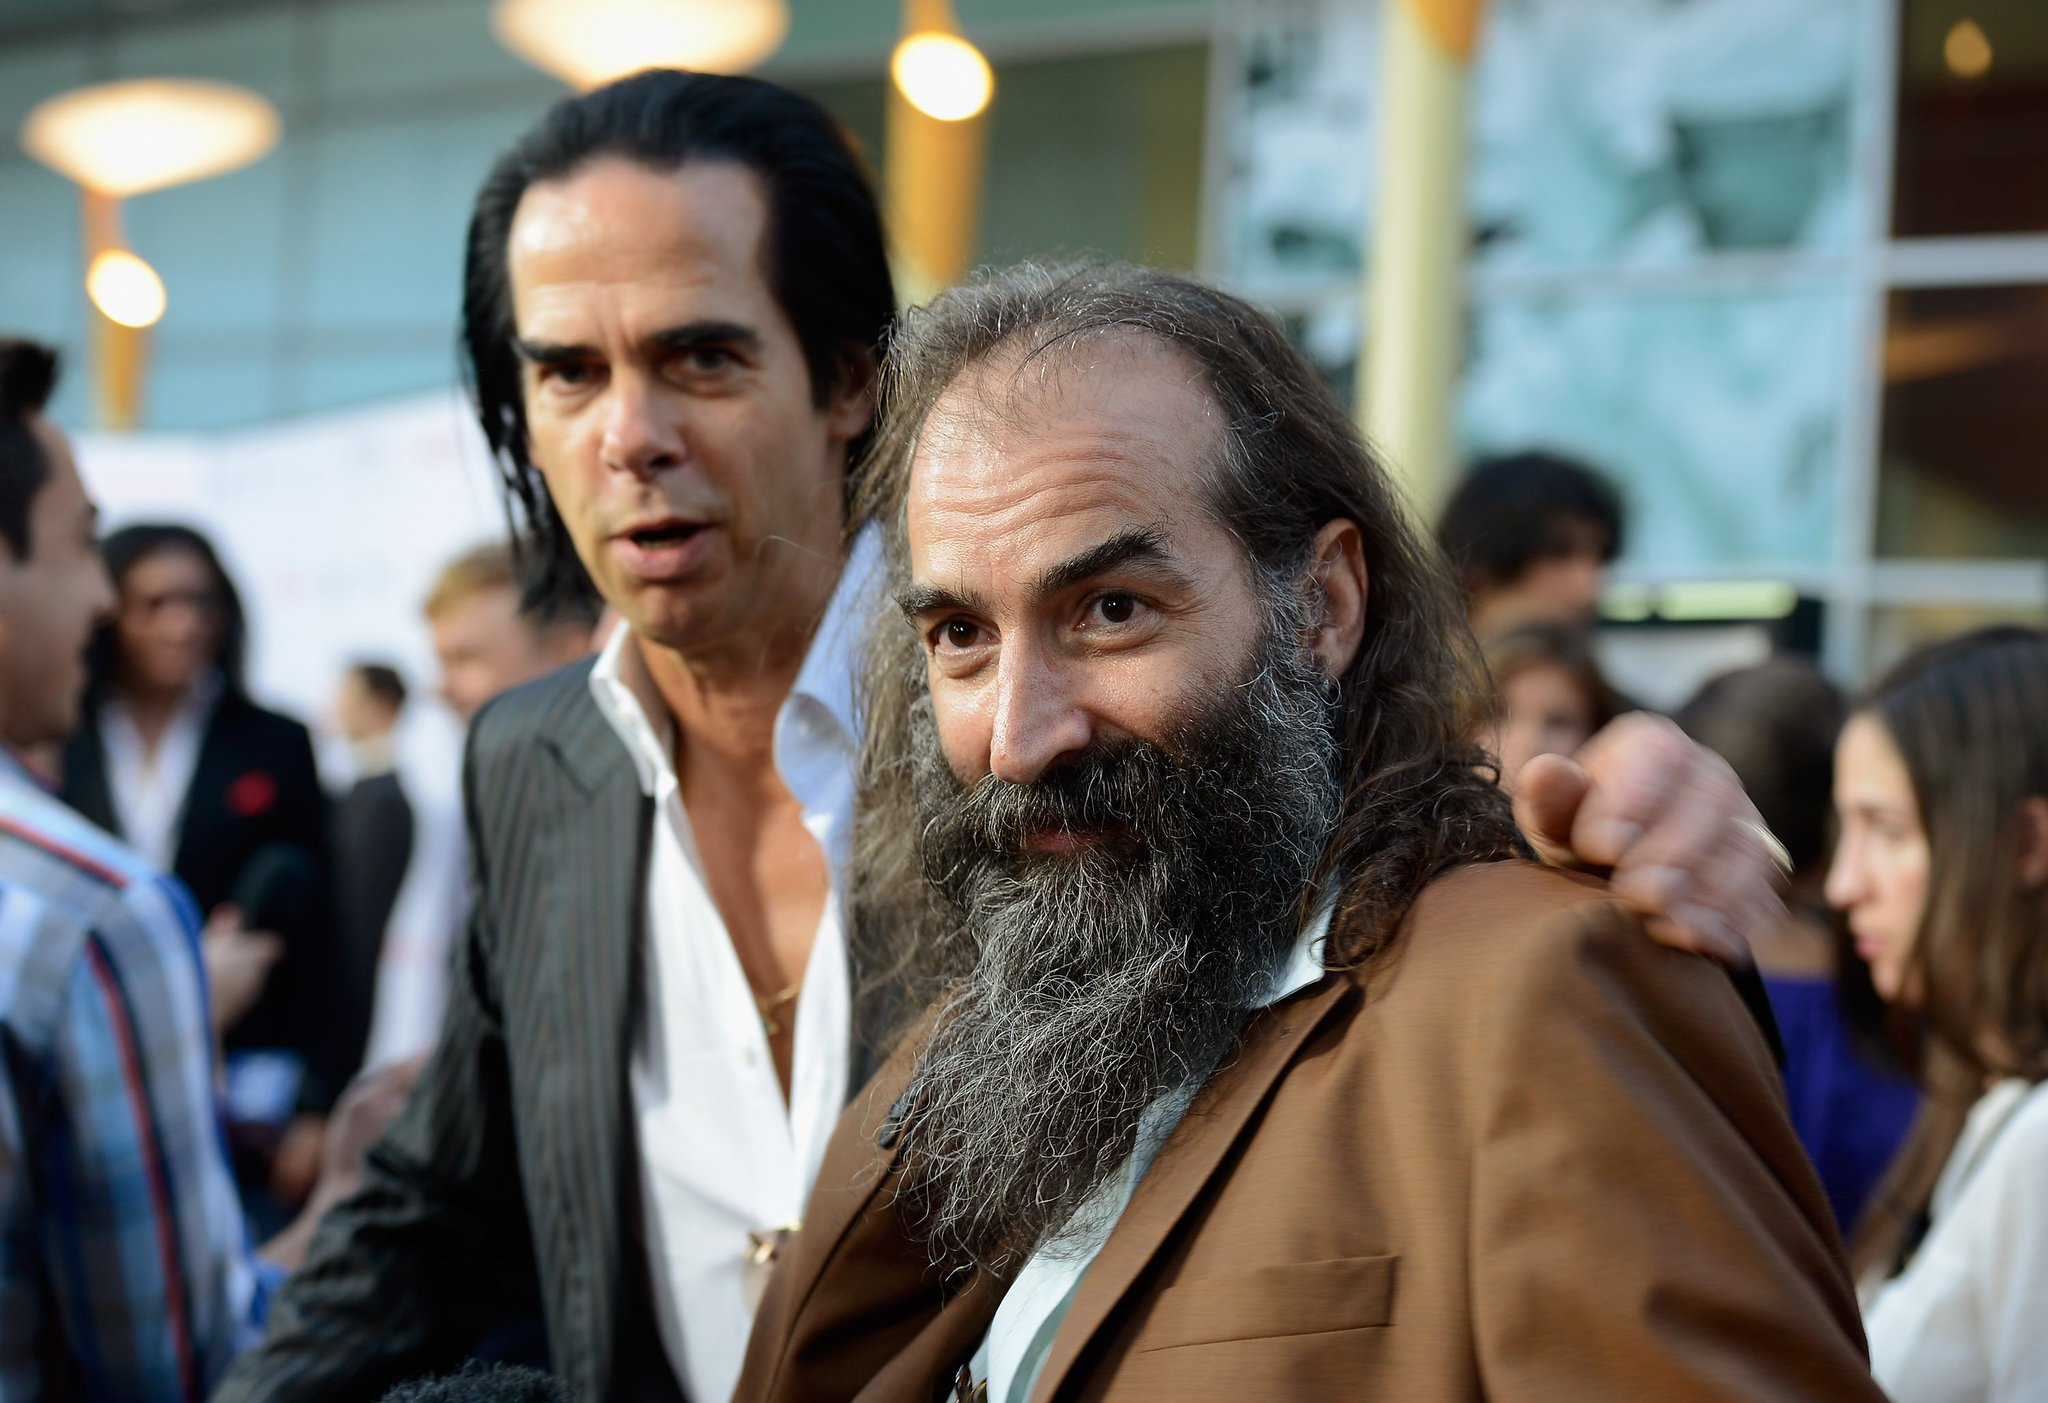 .@nickcave and @warrenellis scoring @HBO's The Case Against Adnan Syed https://t.co/FxQSCZy7V1 https://t.co/8P6uTwmvpk